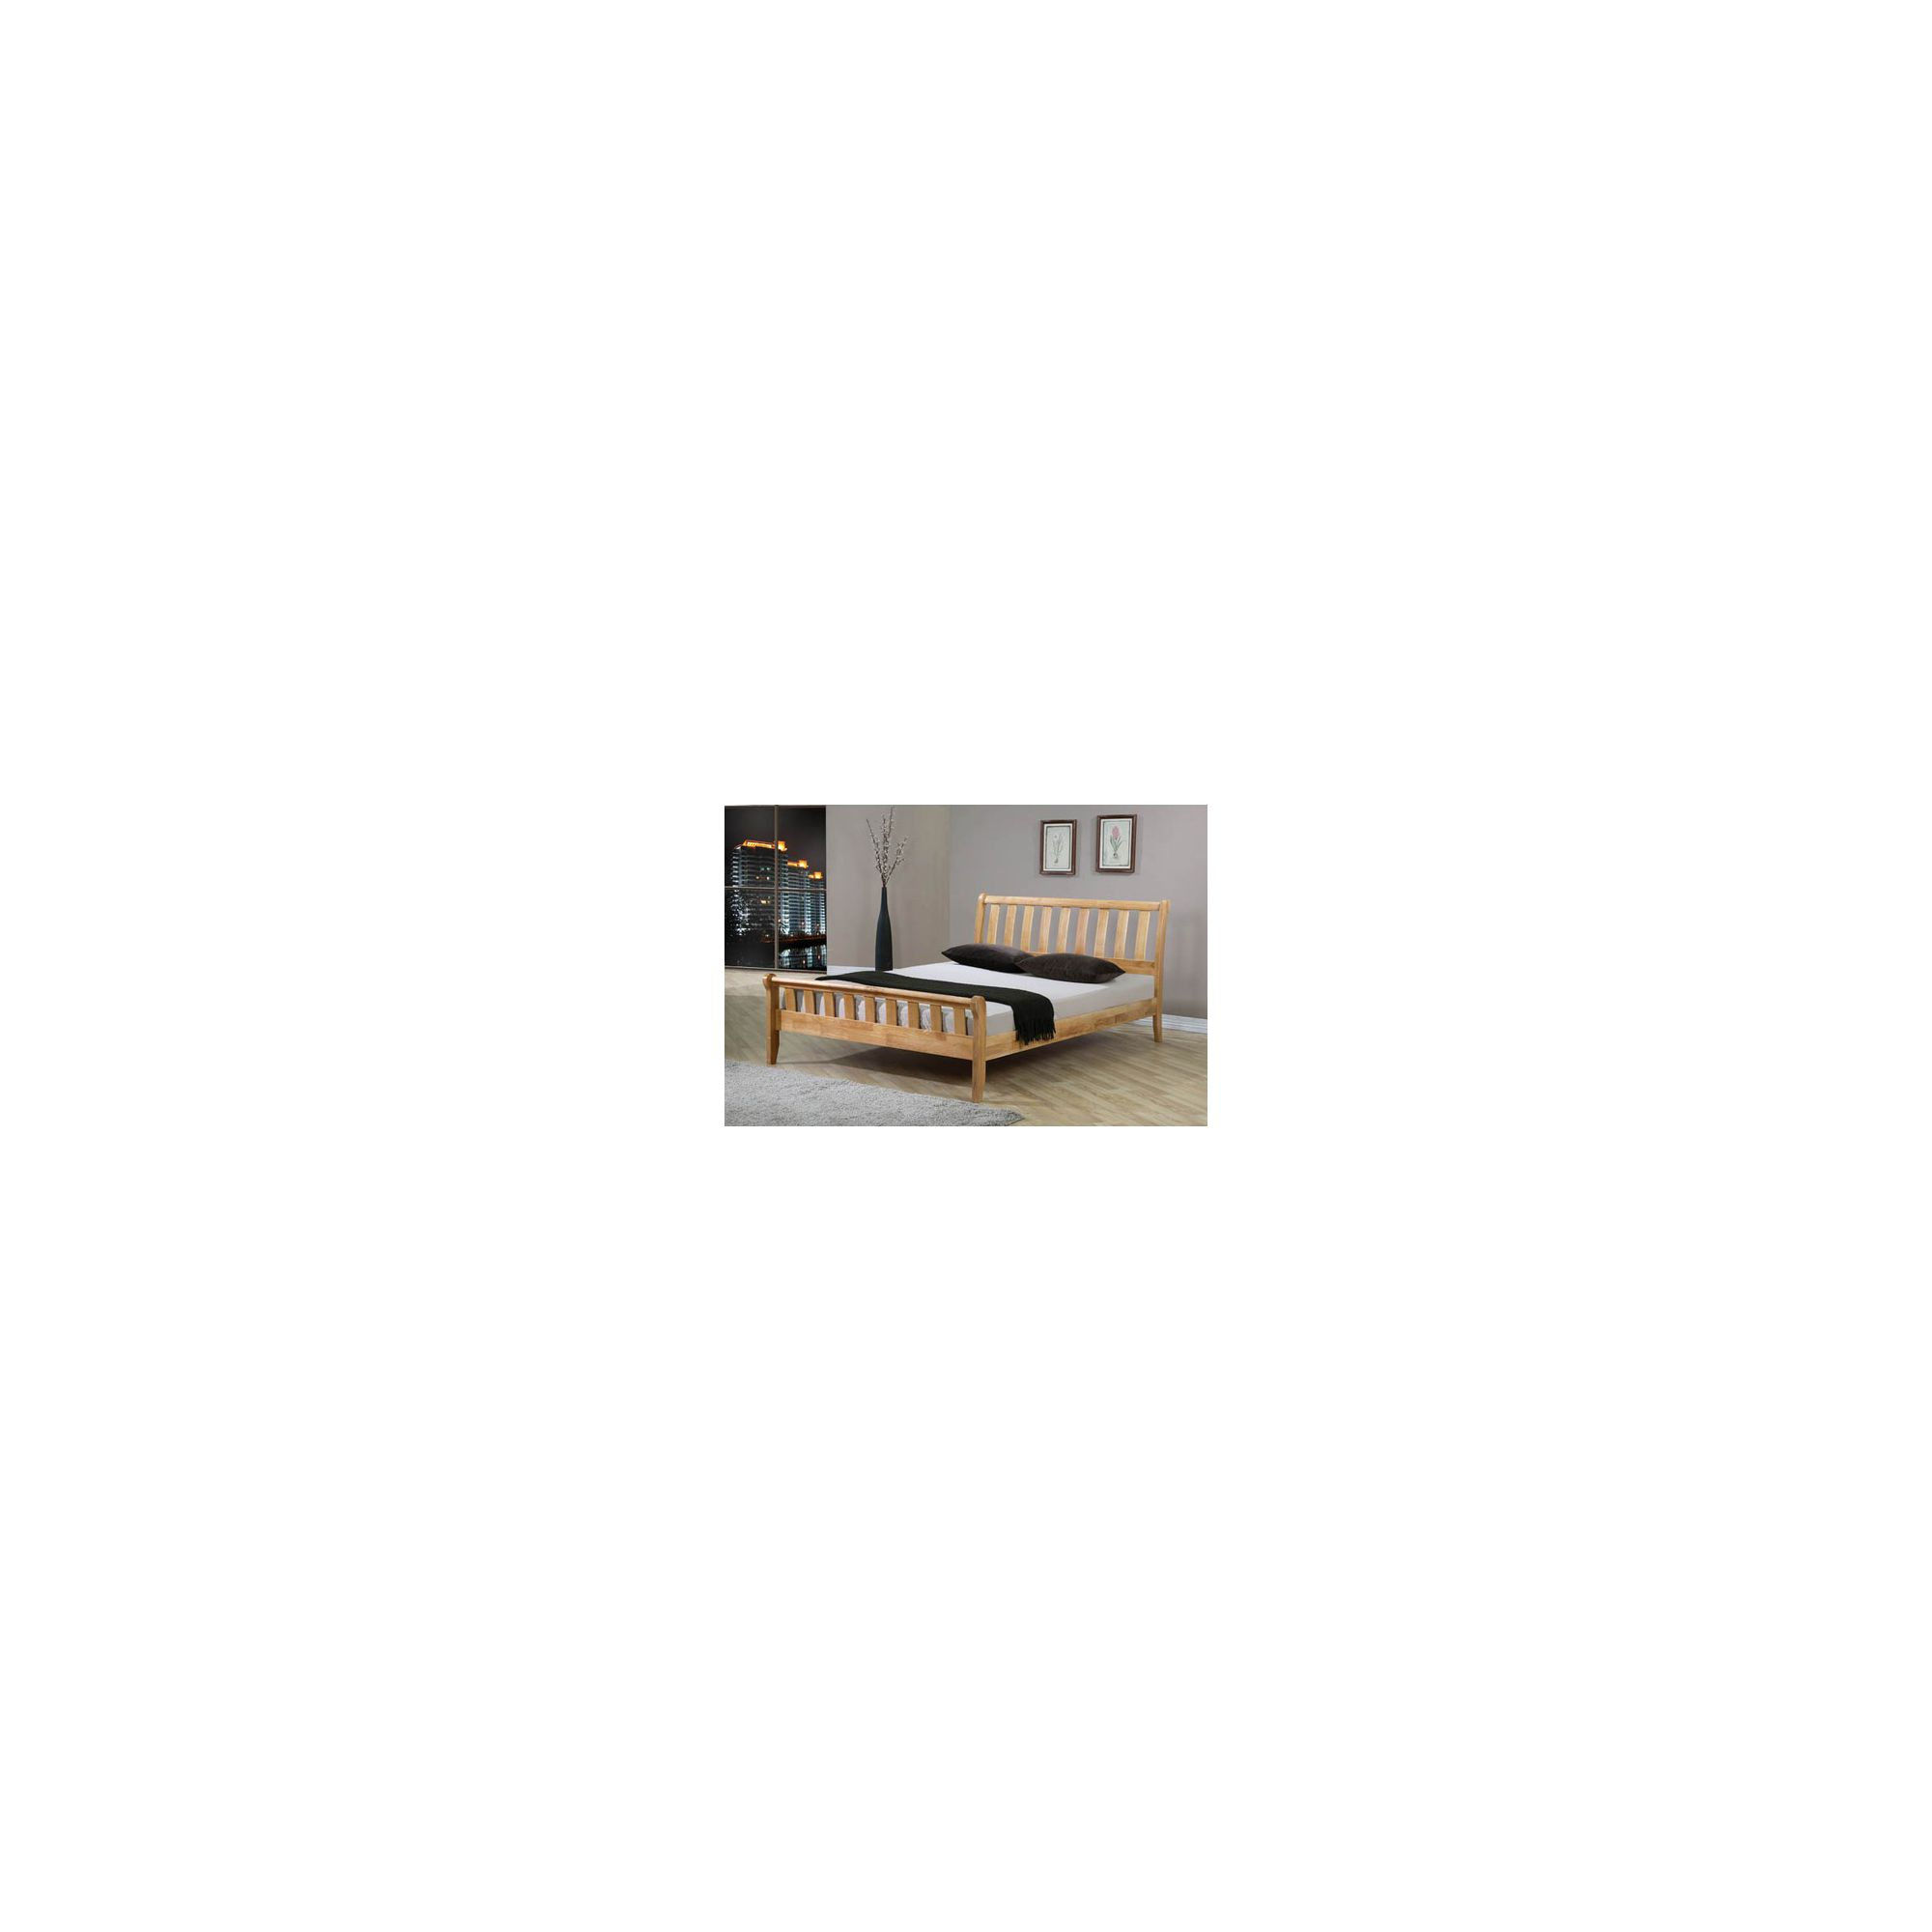 Sleepy Valley Corvallis Bed - 2 Underbed Drawers/Hardwood - Small Double at Tesco Direct